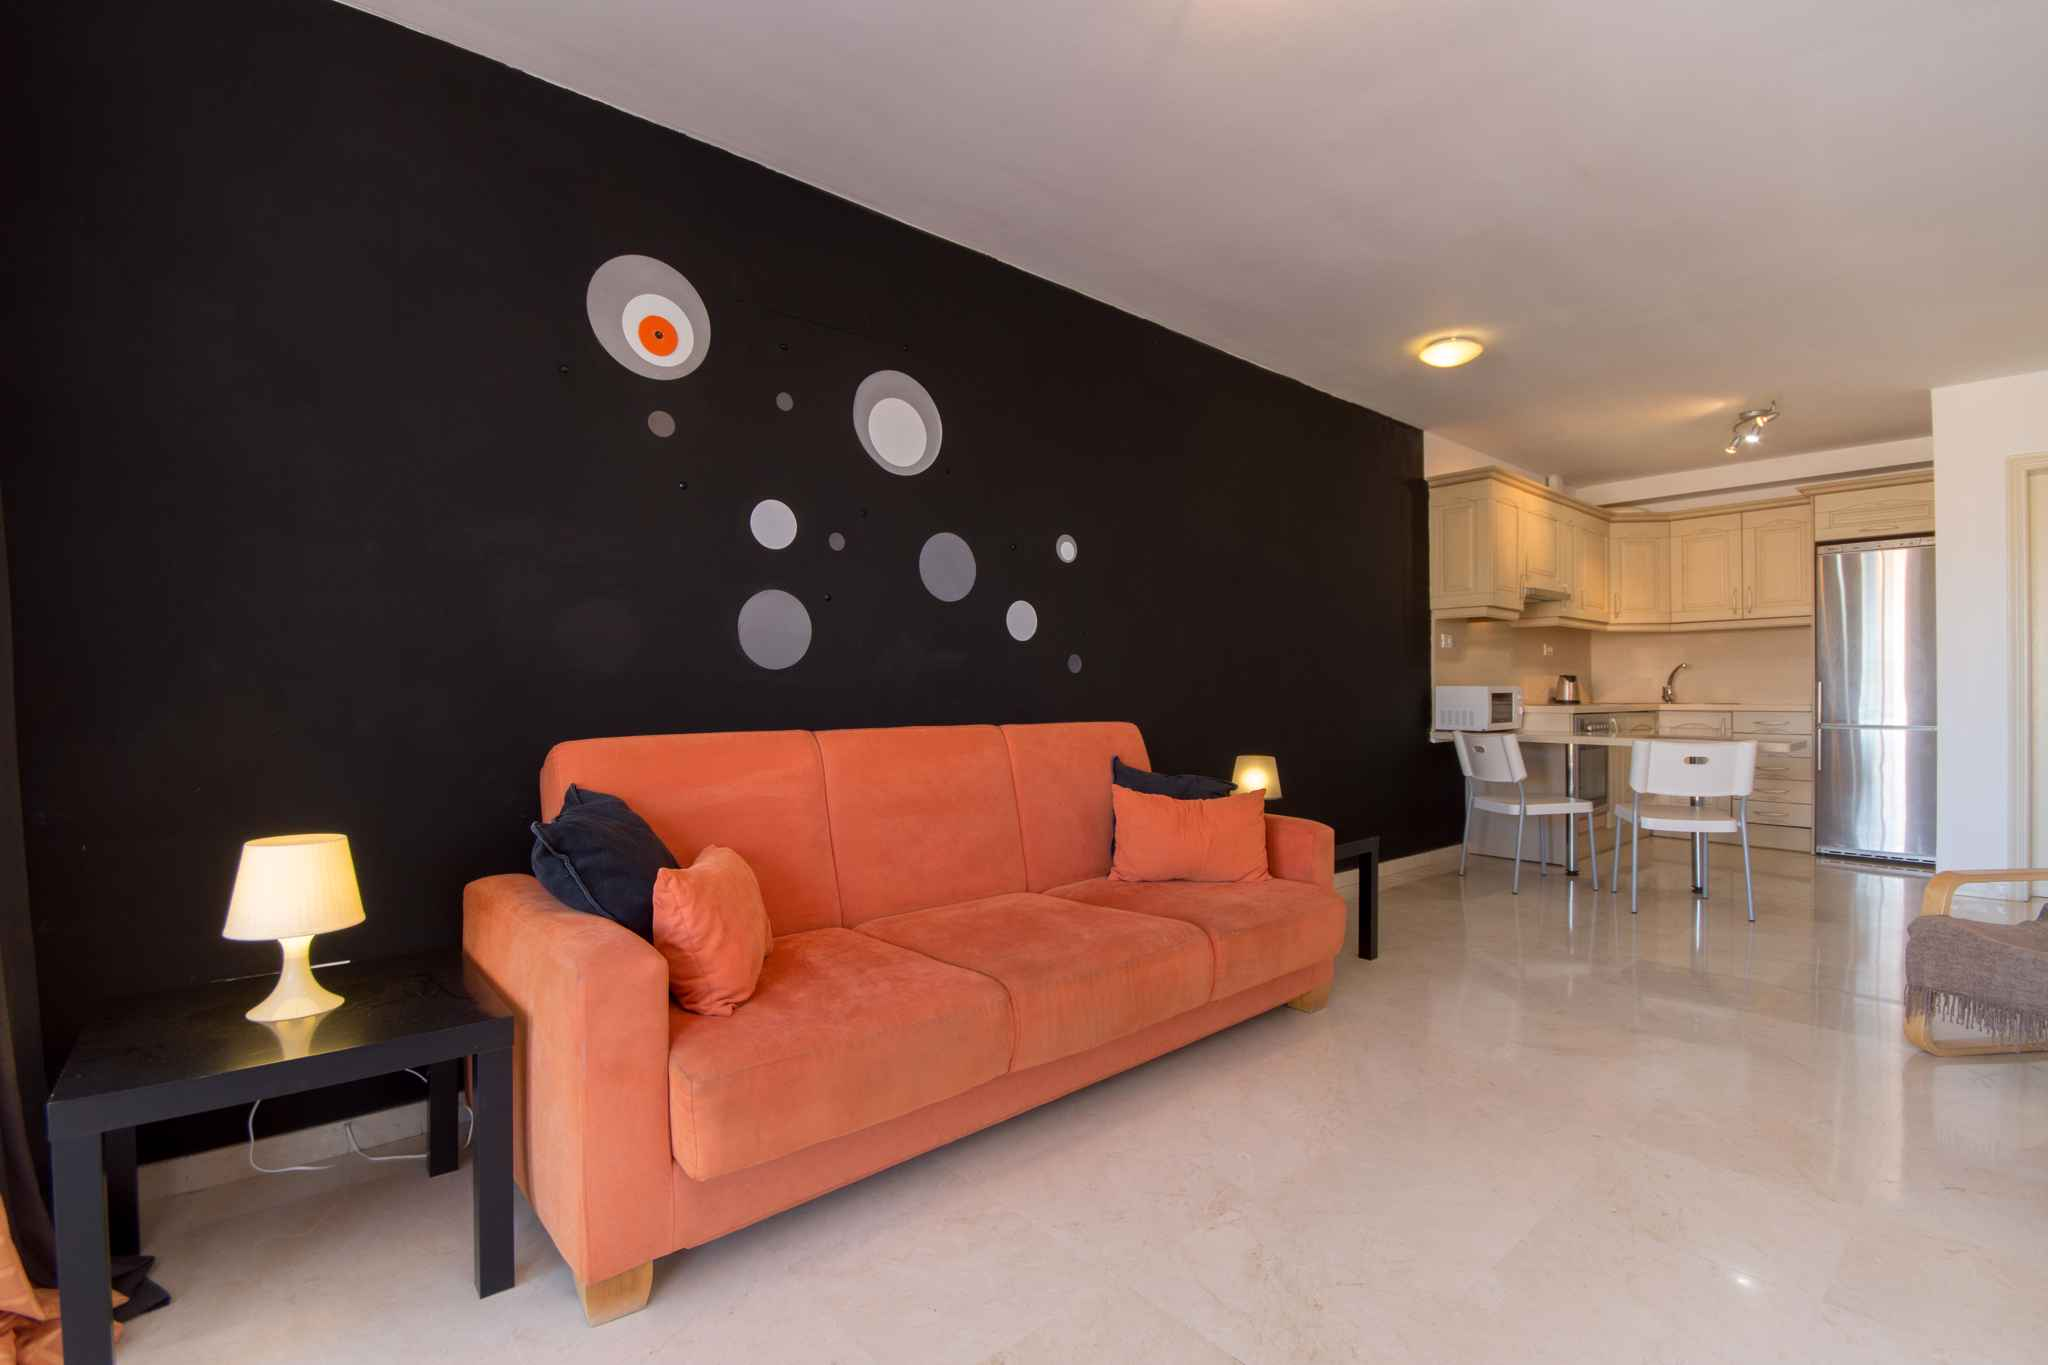 Holiday apartment mit Pool in Ferienanlage (2377552), Palm-Mar, Tenerife, Canary Islands, Spain, picture 16